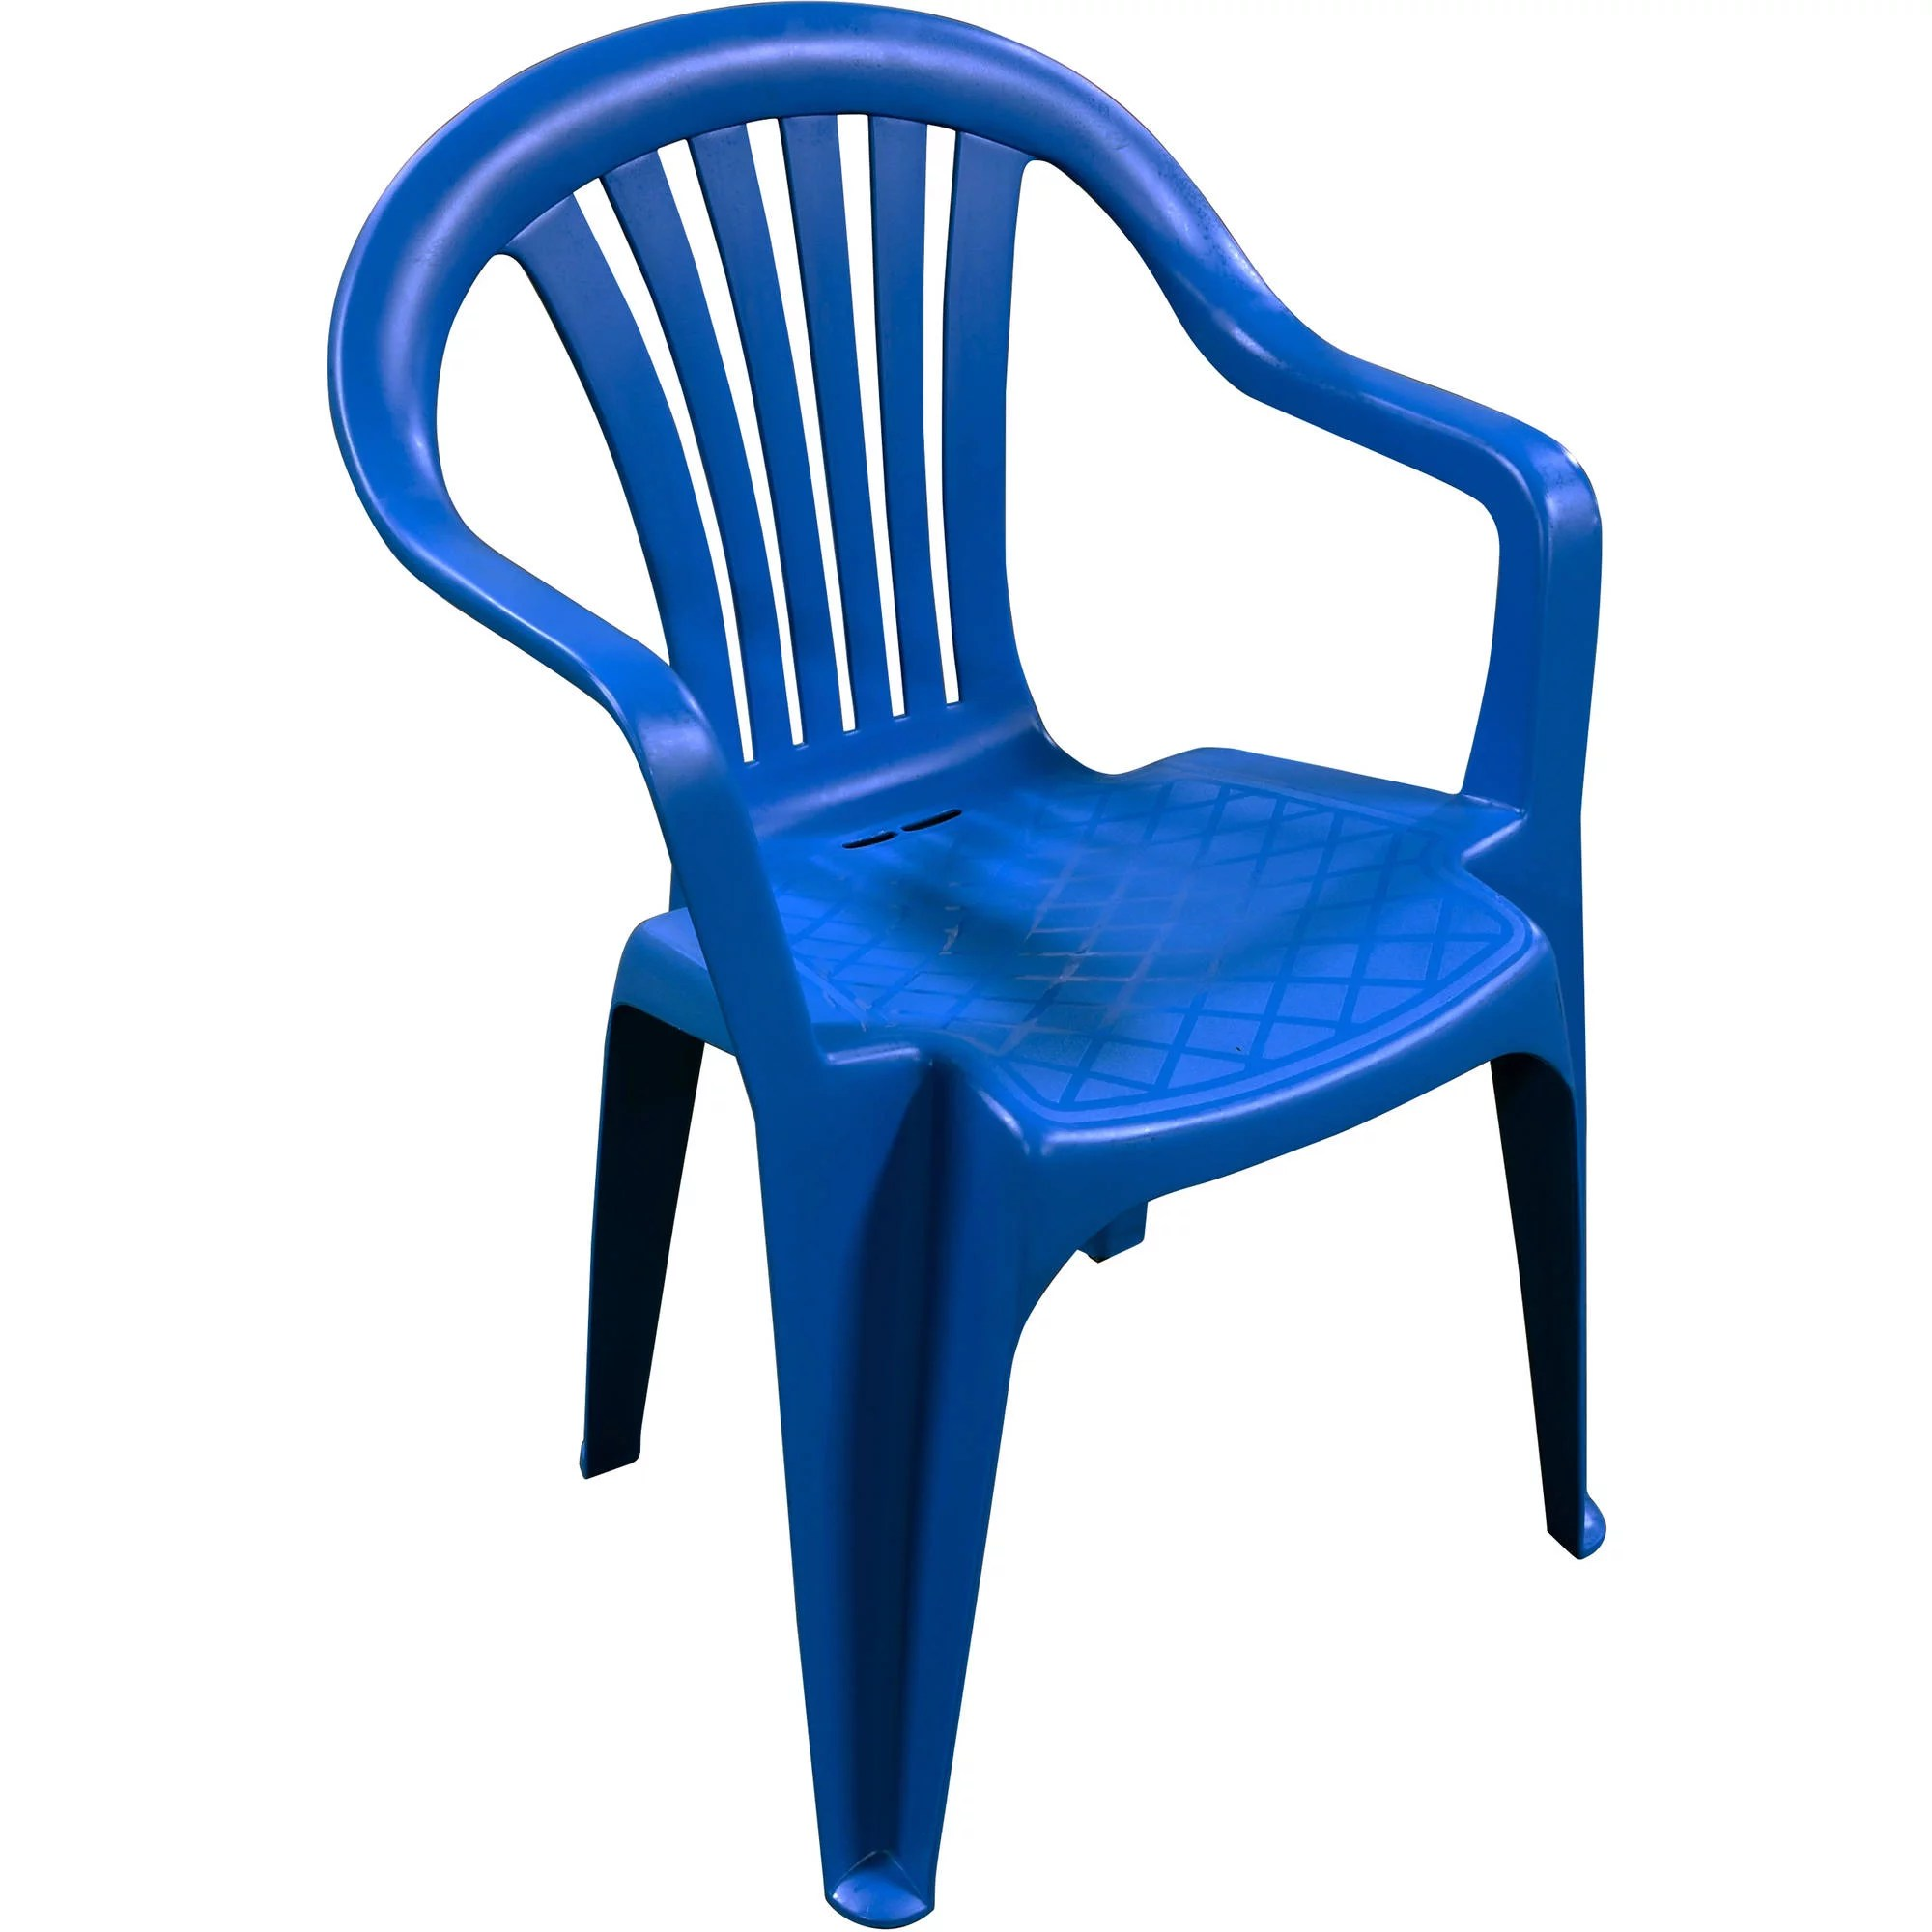 walmart lawn chair amazon uk christmas covers adams manufacturing low back patriotic blue com departments